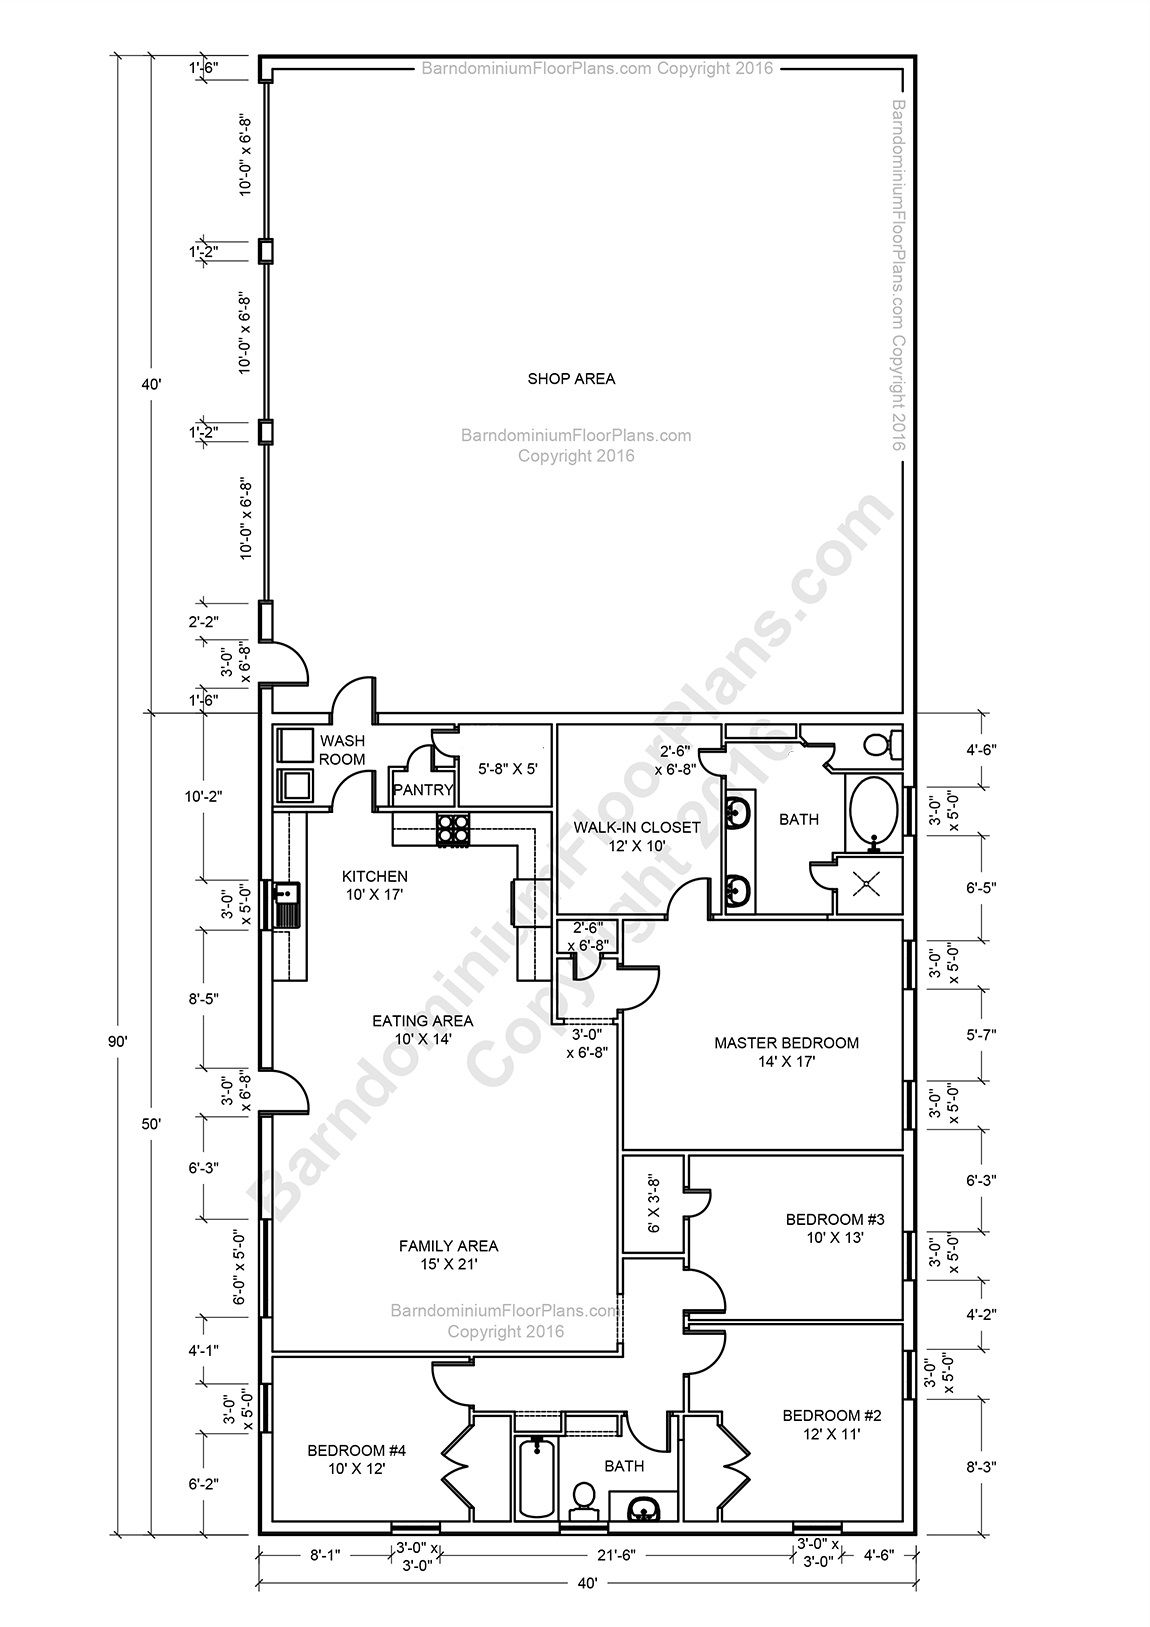 Barndominium floor plans pole barn house plans and metal for Metal pole barn house plans